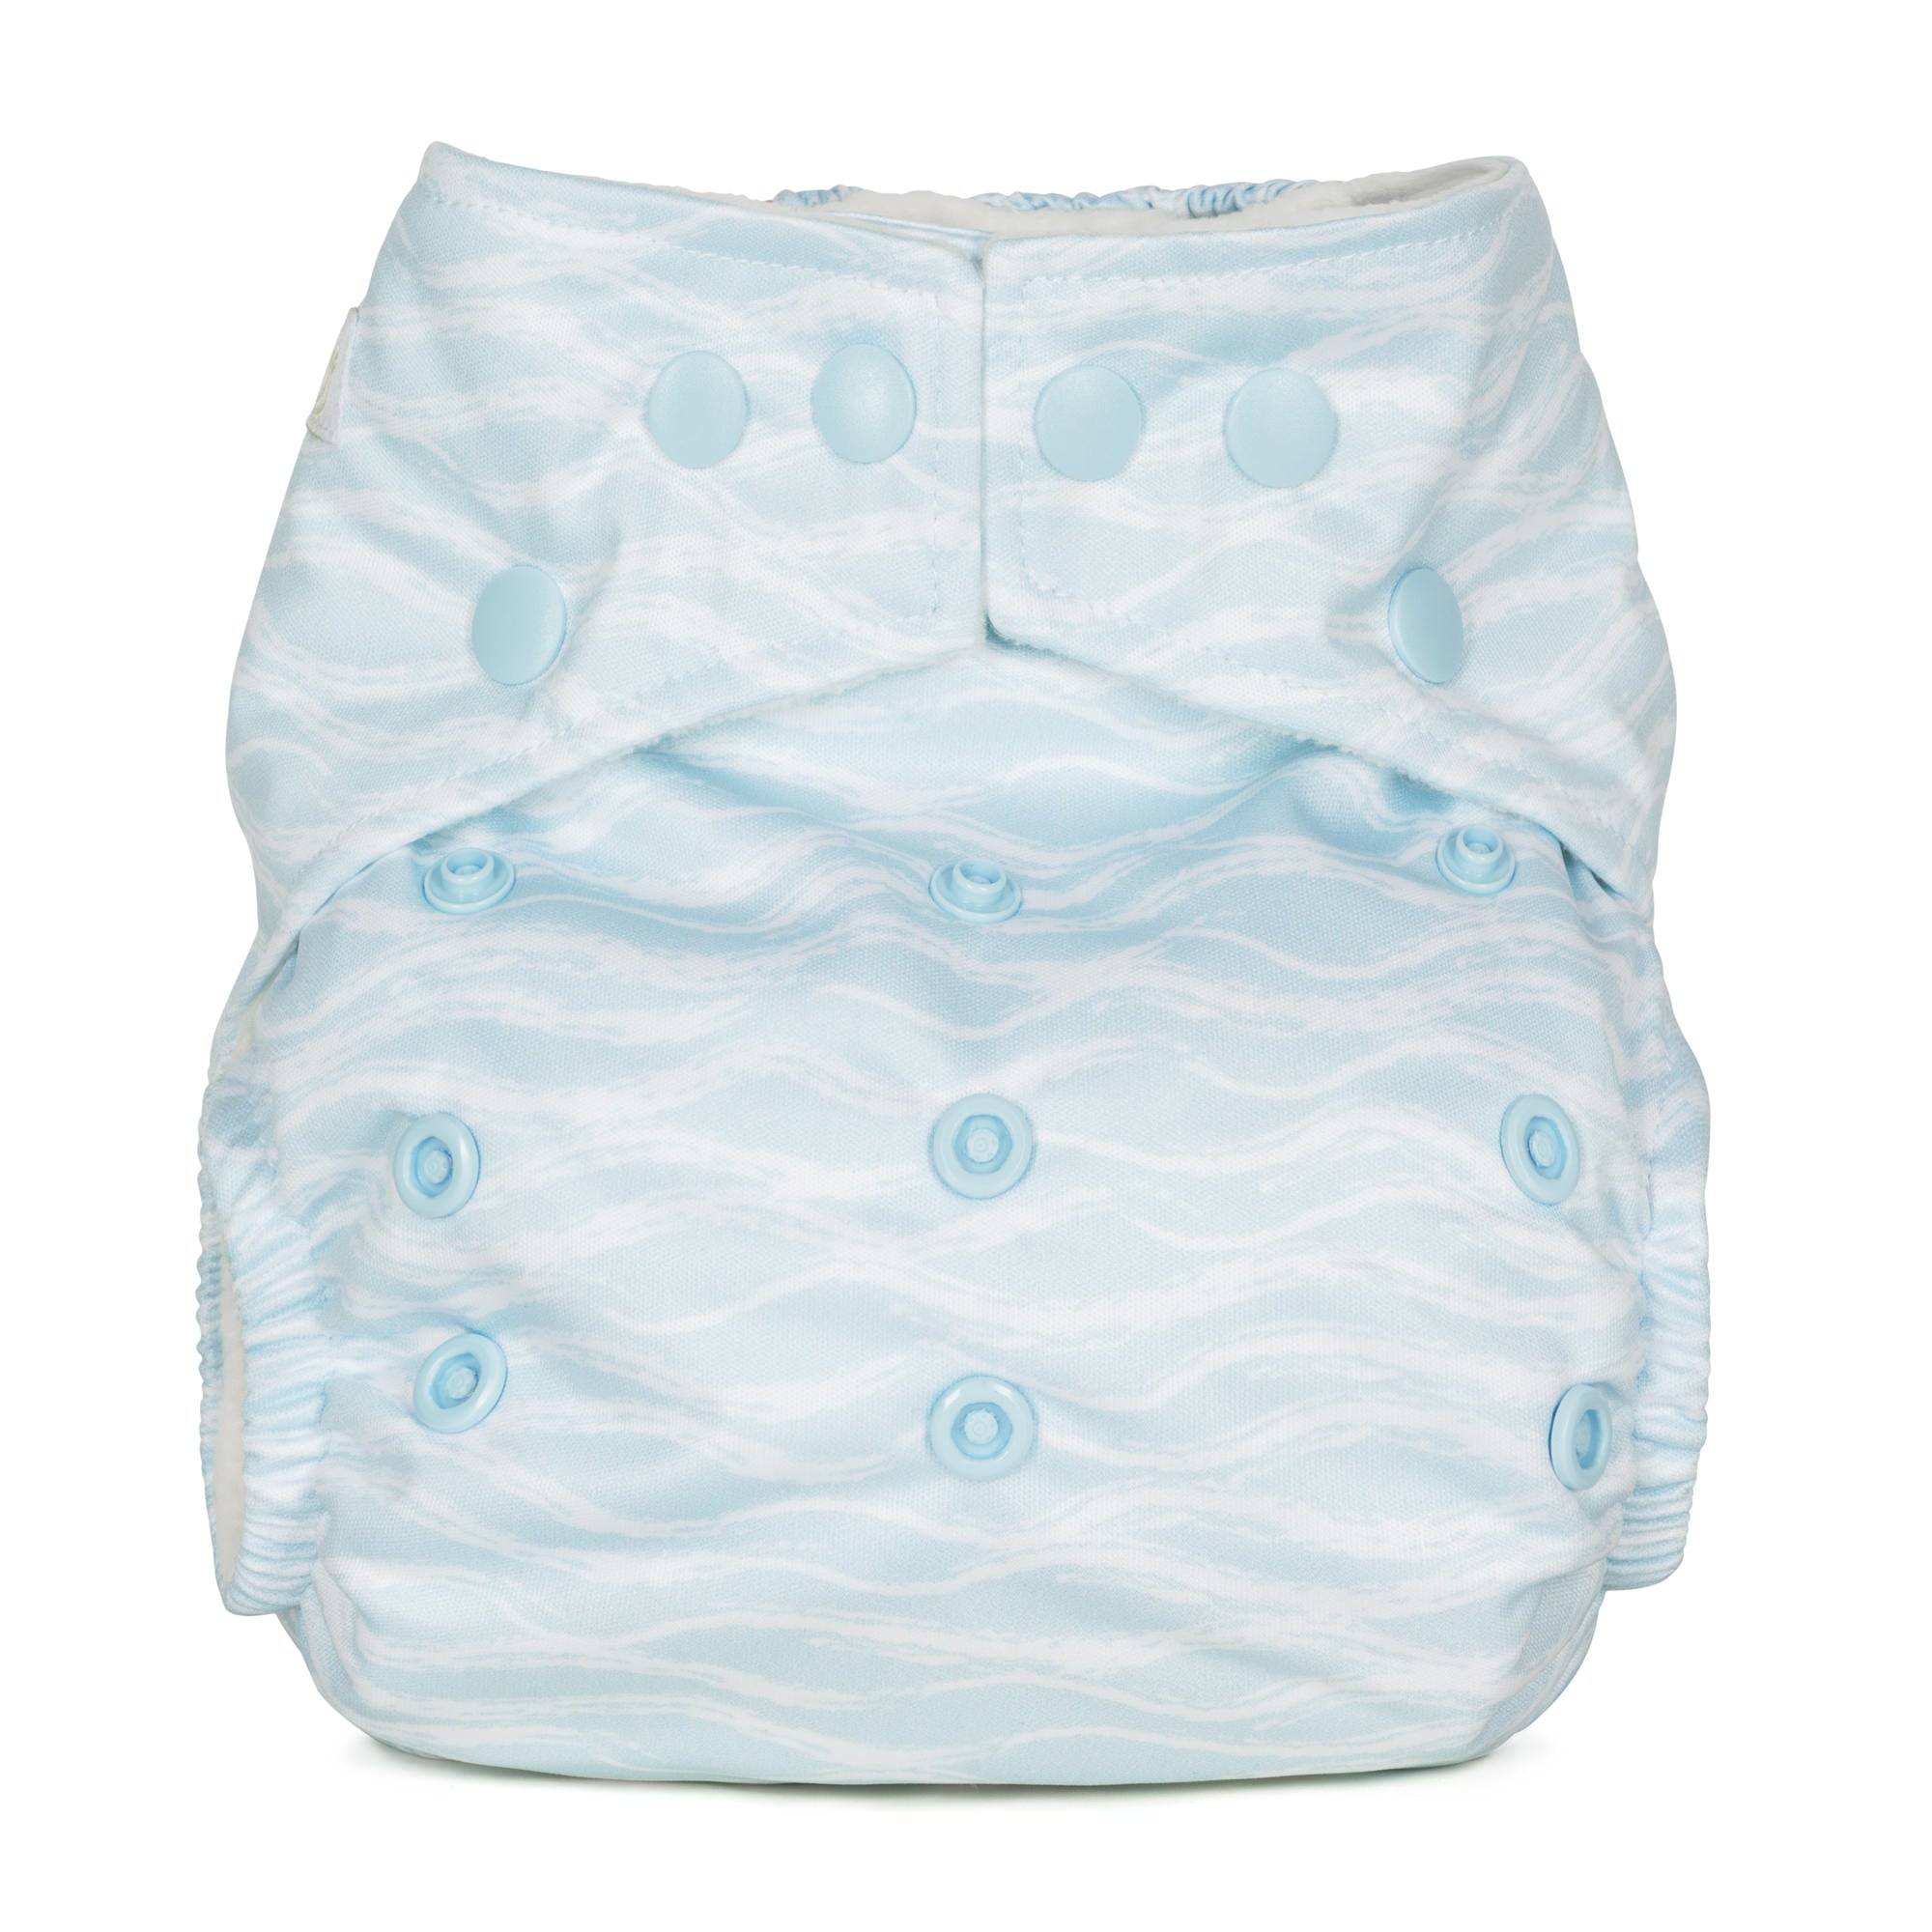 Baba and Boo One Size Pocket Cloth Nappy - Waves | nappycakes-mt | Single Item.